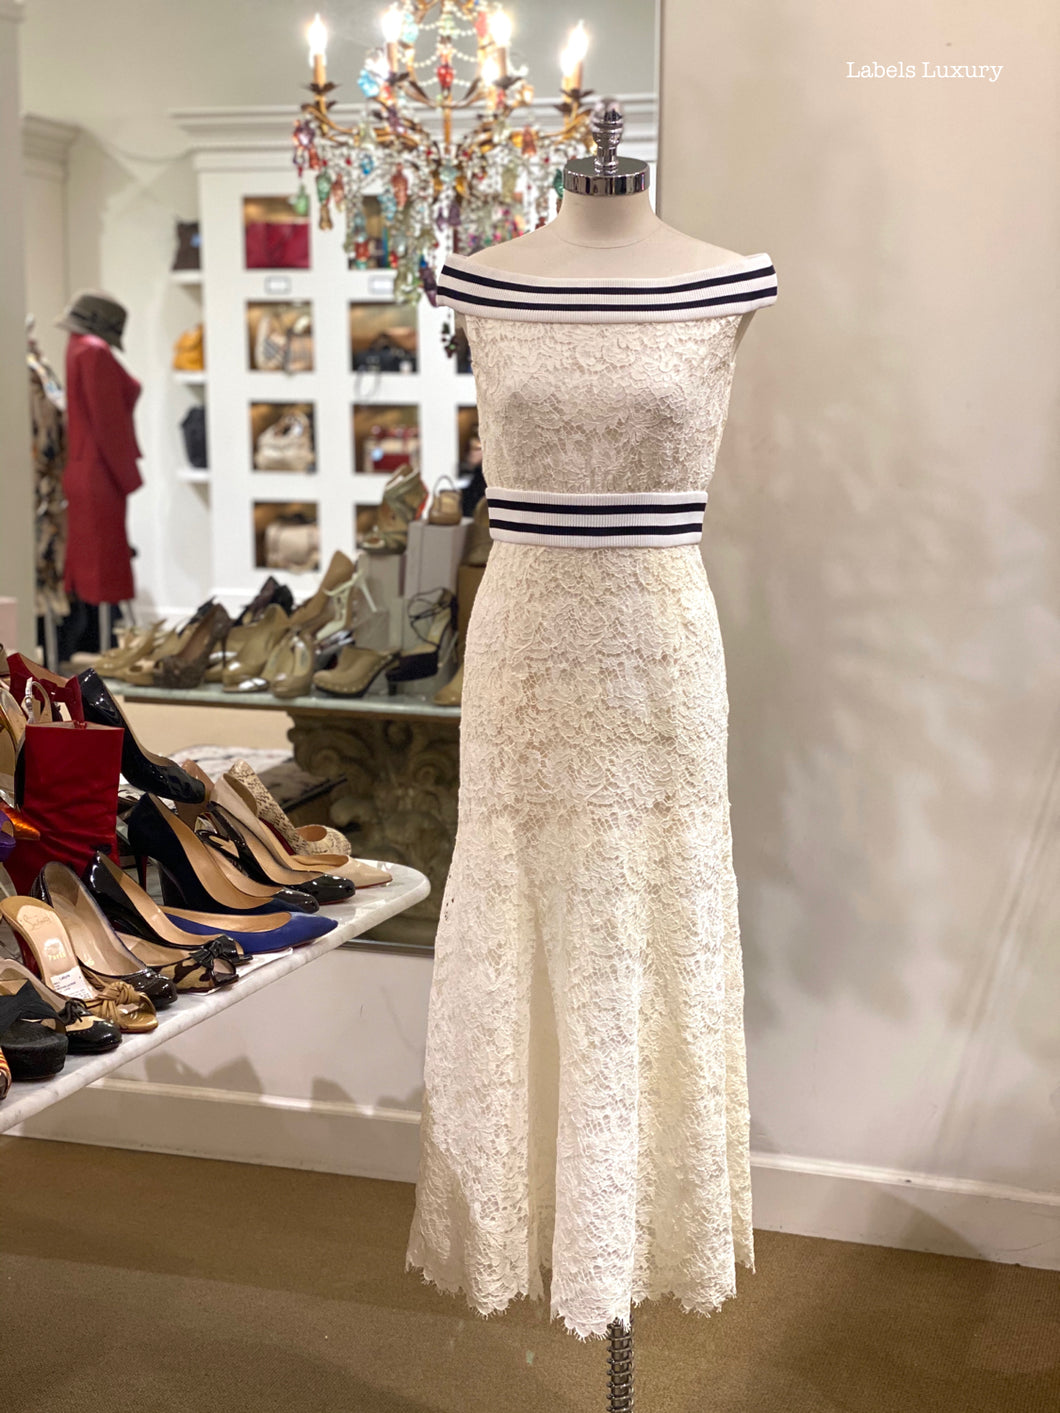 CHANEL Lace Dress | 4 - Labels Luxury